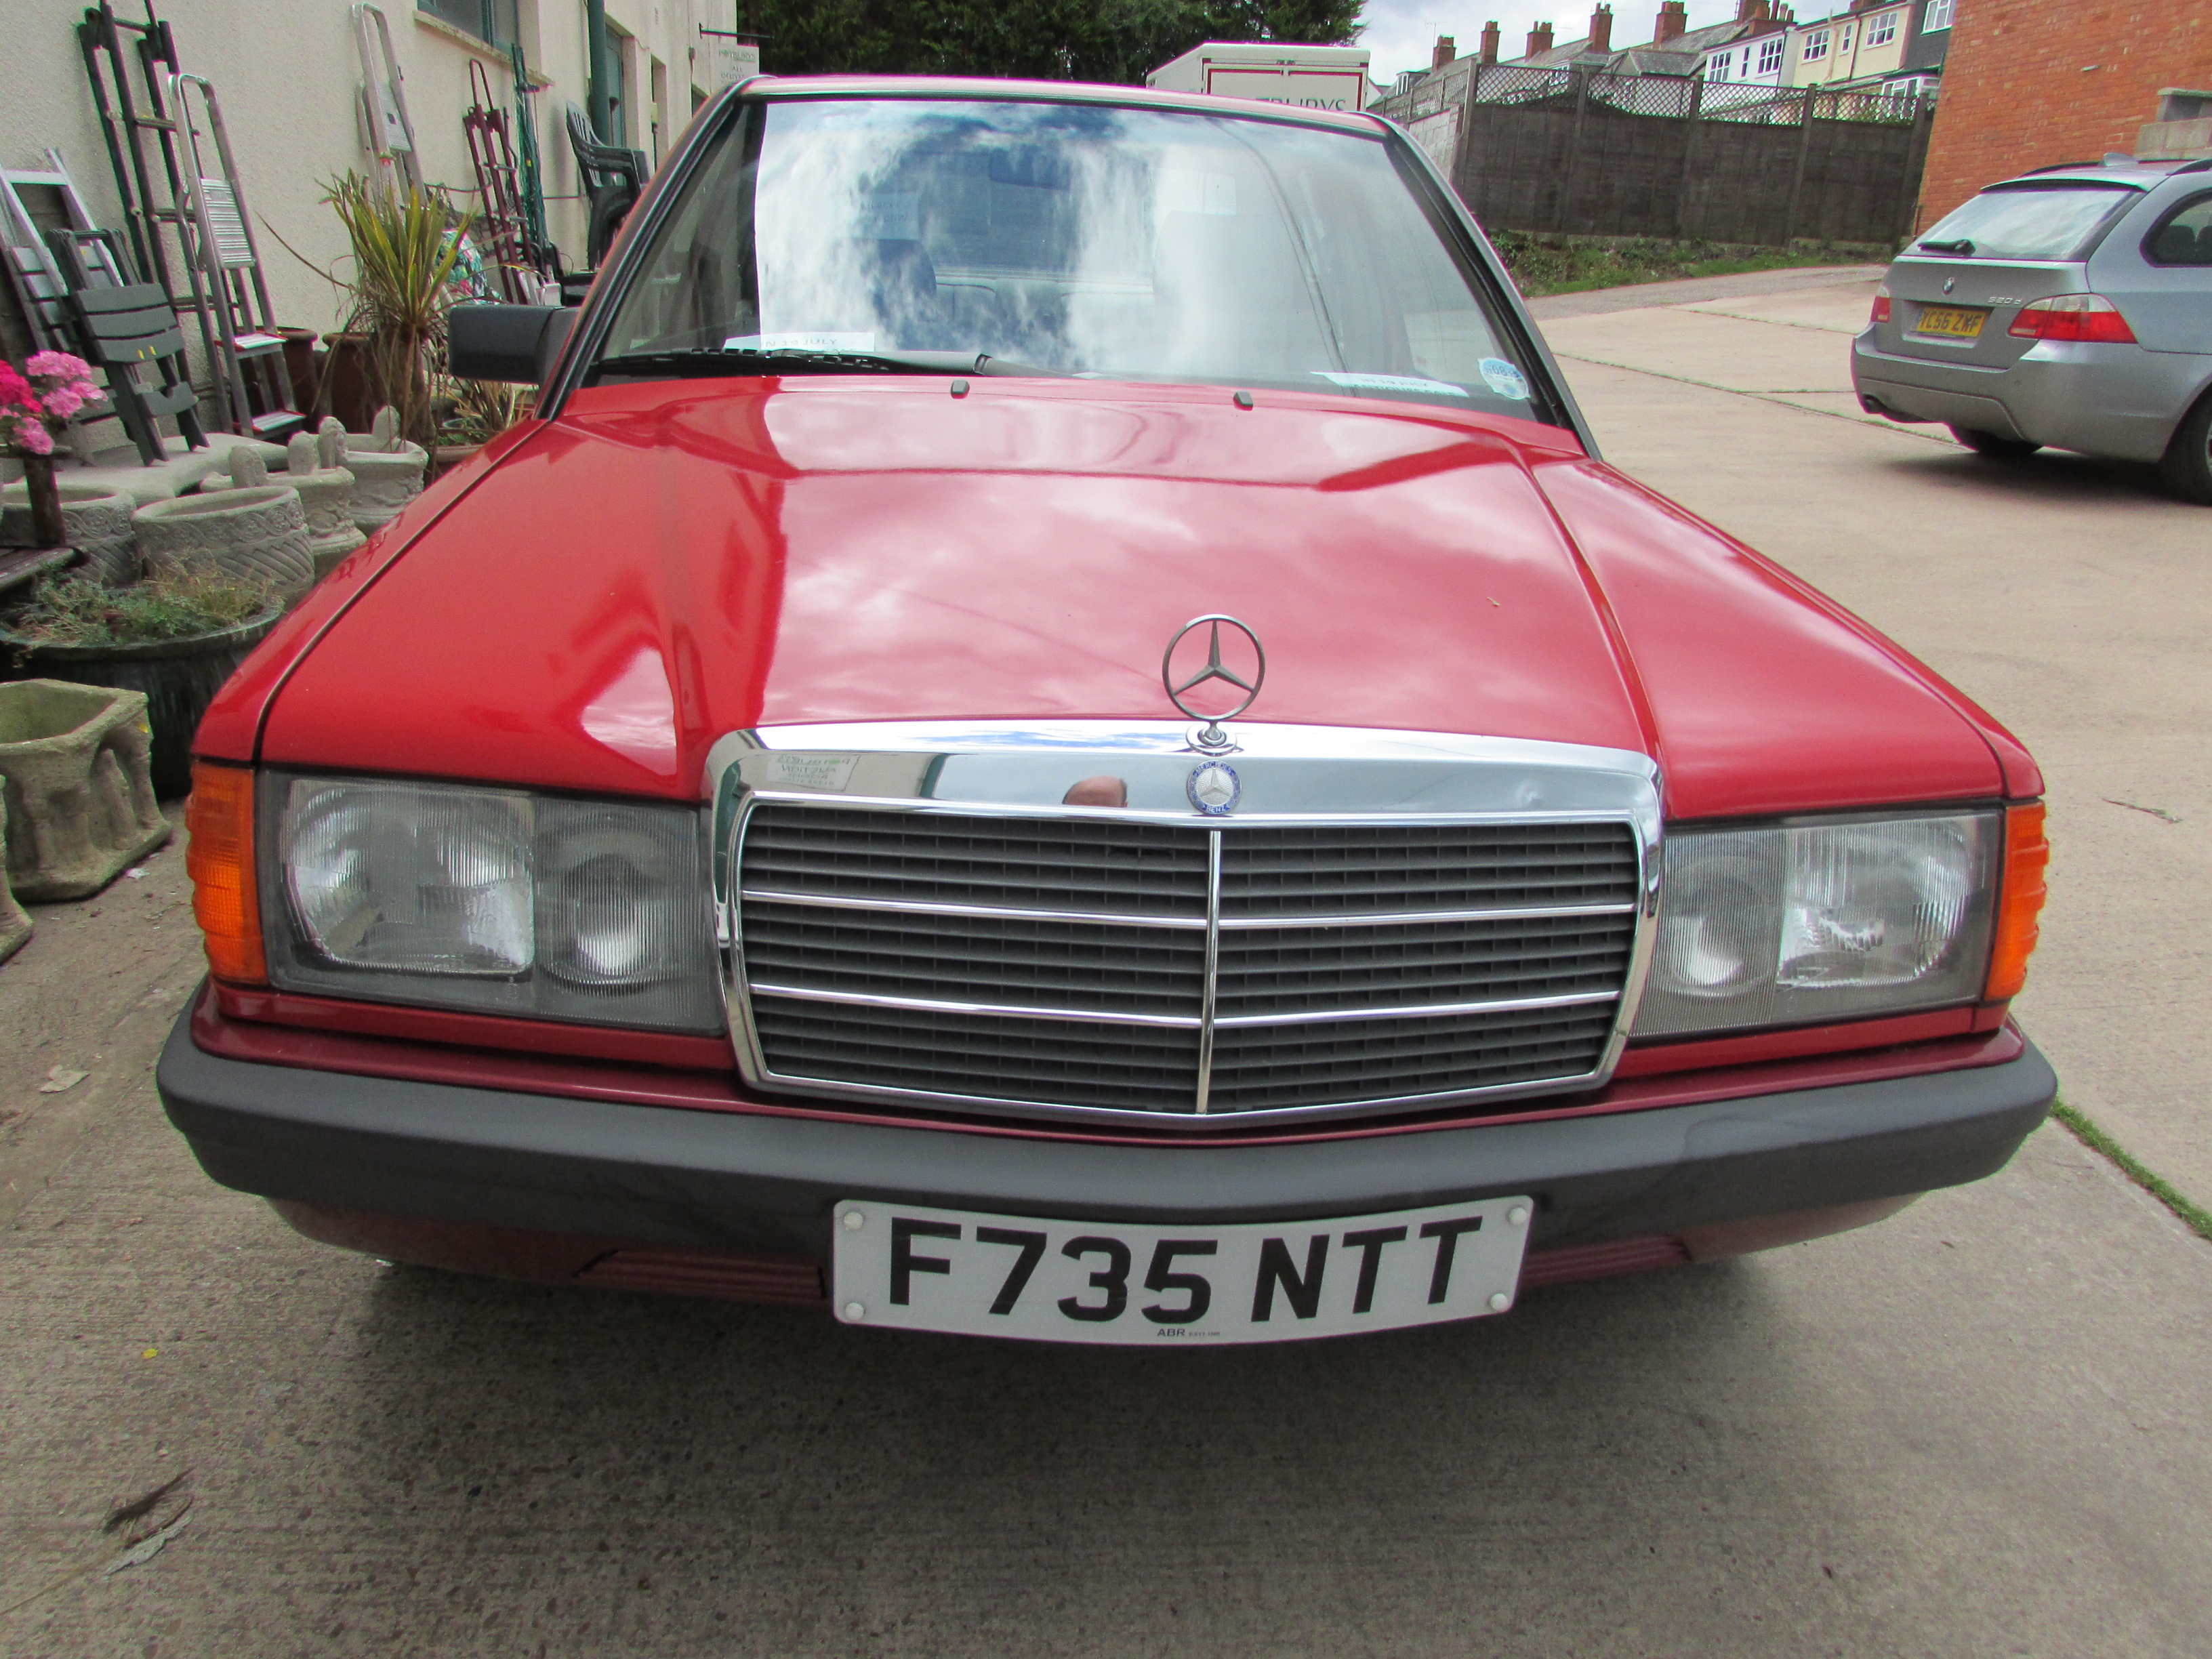 Lot 1 - Red Mercedes 190E automatic four-door saloon, 1997 cc petrol engine, F735 NTT registered 06/09/89,